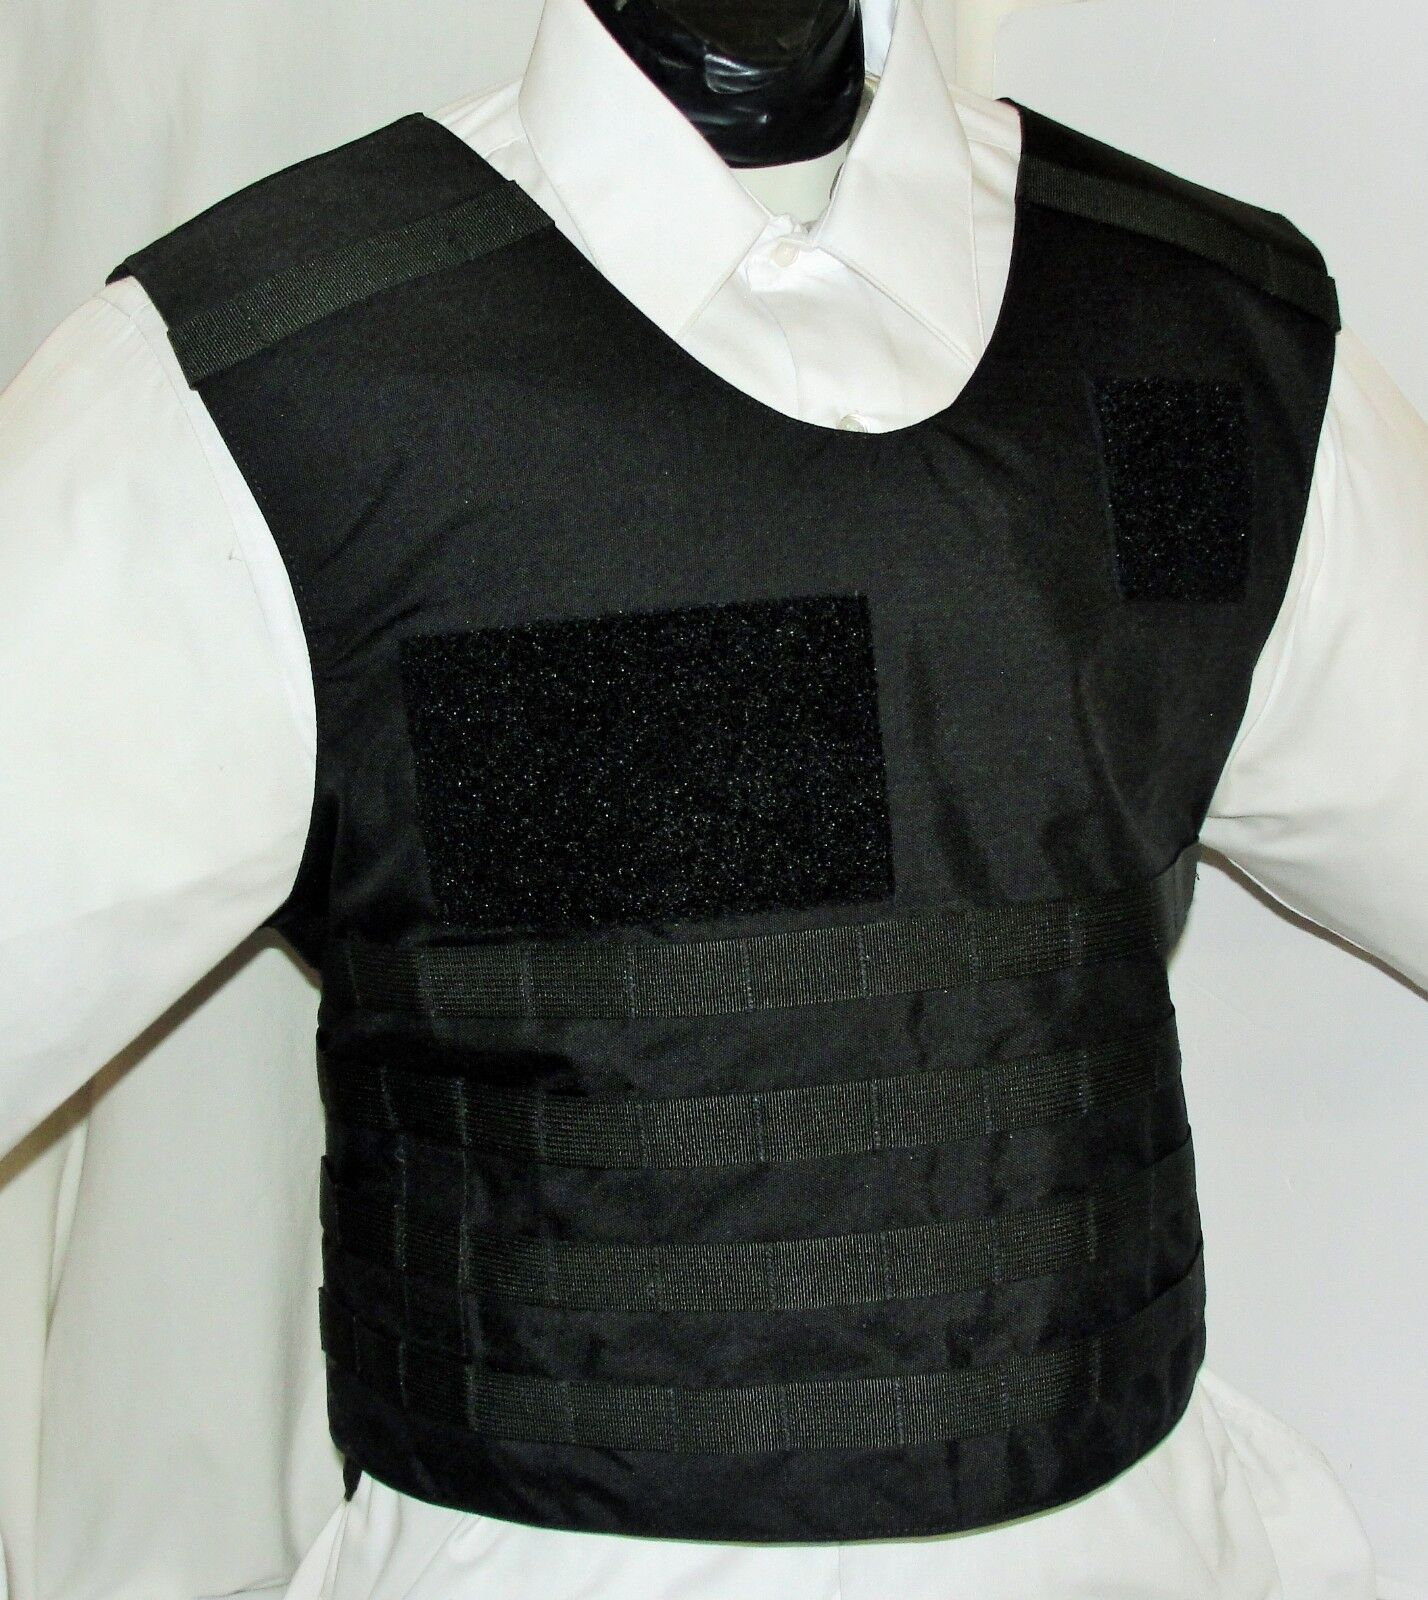 New Large   Plate Carrier Level IIIA Body Armor BulletProof Vest with Inserts  high-quality merchandise and convenient, honest service